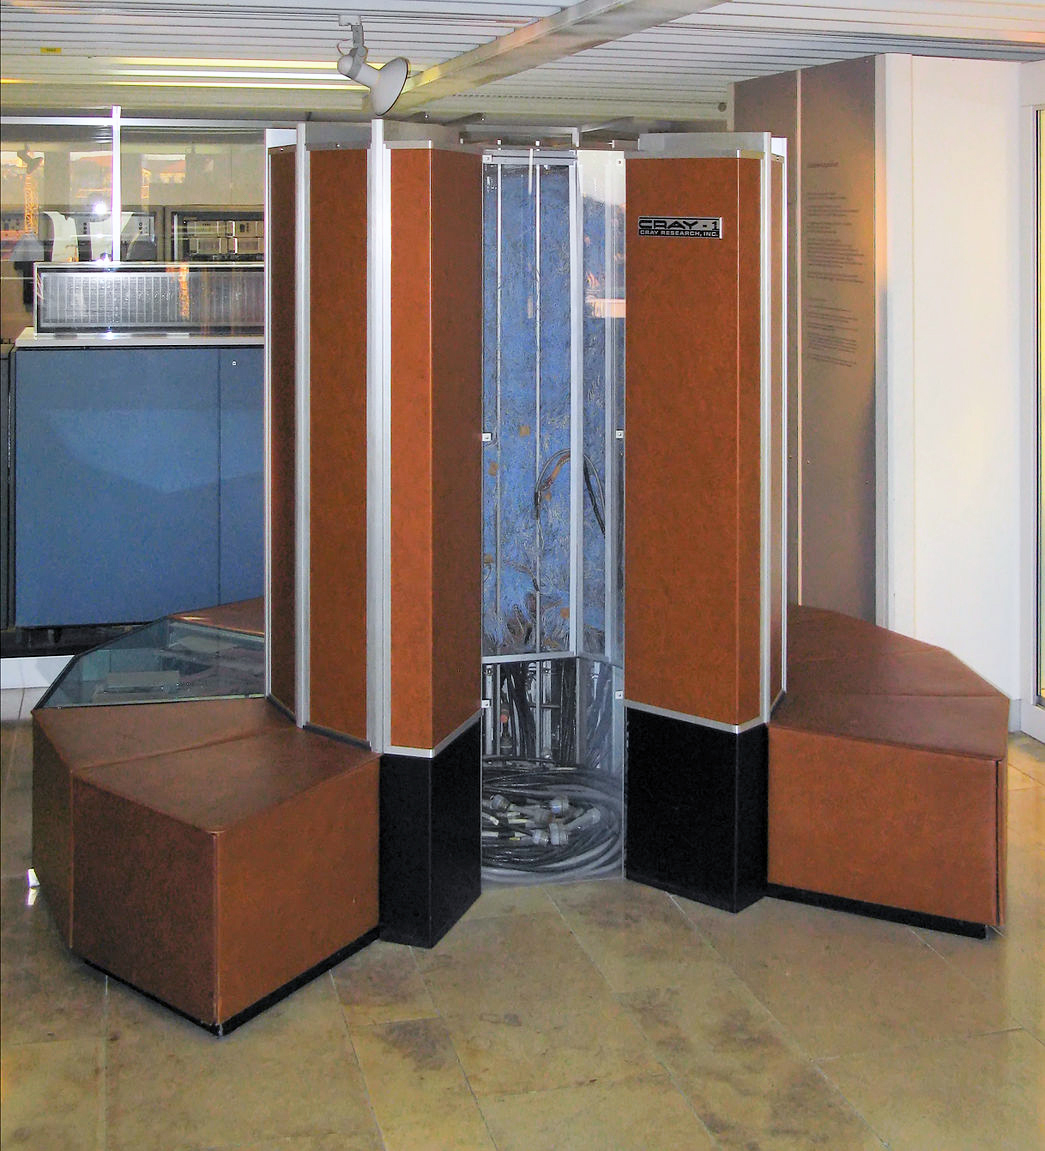 http://upload.wikimedia.org/wikipedia/commons/f/f7/Cray-1-deutsches-museum.jpg